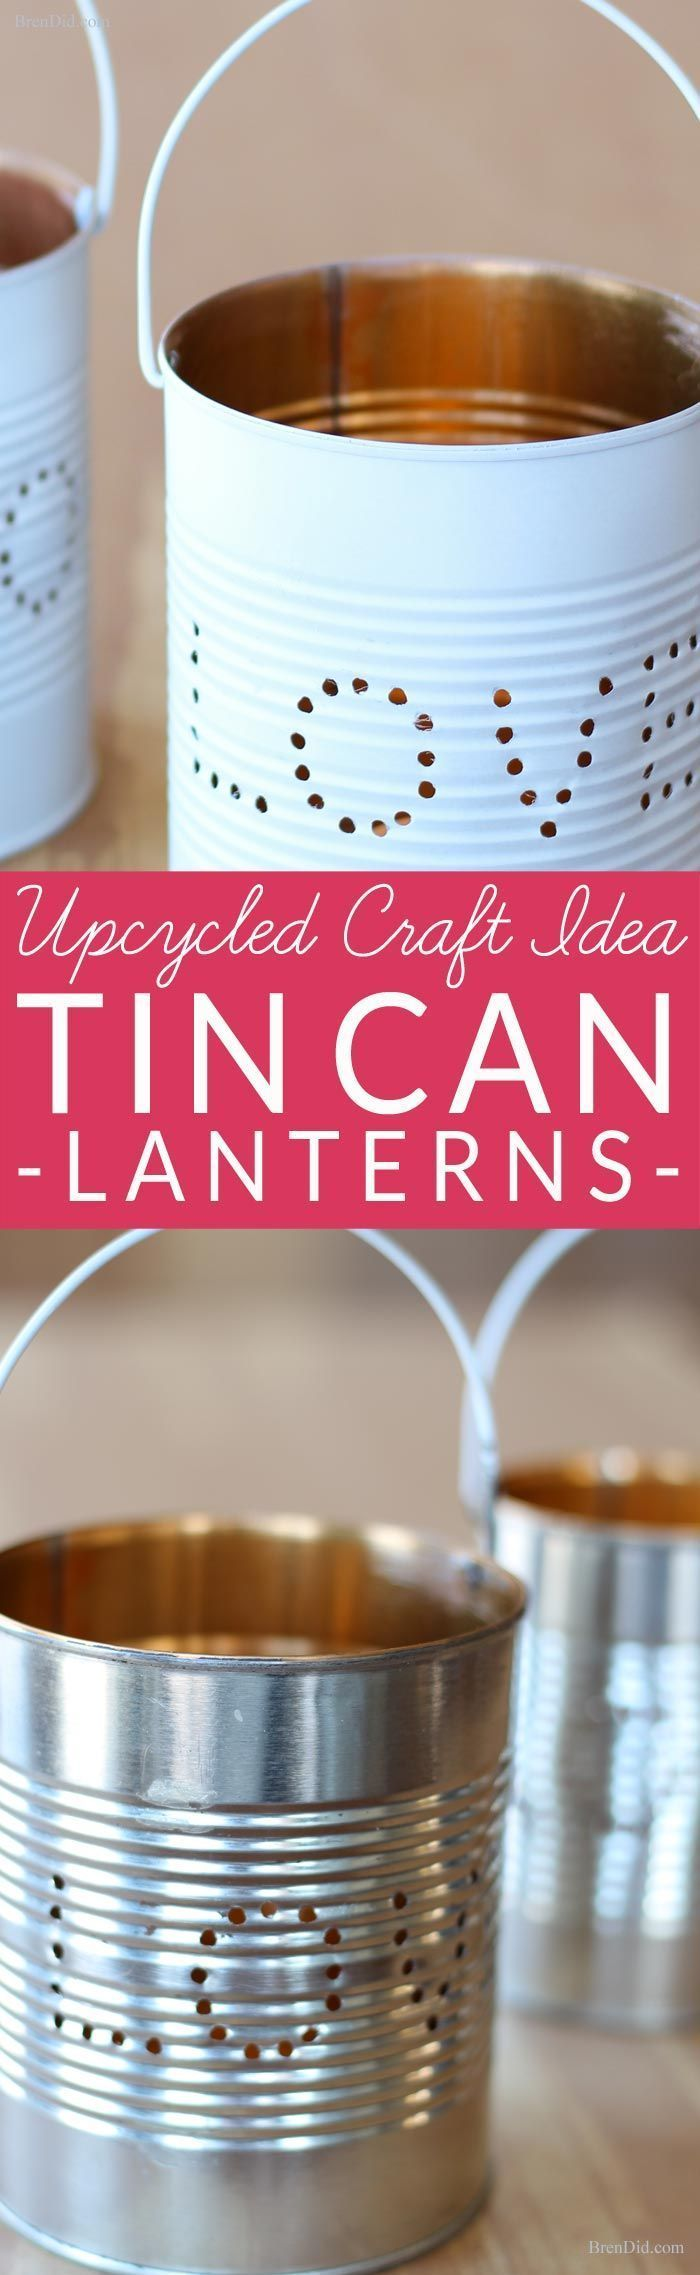 Ideas : Upcycled Craft Ideas for Valentines Day. Learn how to make an adorable tin lantern from an upcycled tin can! These easy DIY lanterns are made from just two recycled craft supplies: a tin can and a wire coat hanger. Perfect for rustic wedding, Valentines Day or a romantic décor. The Art Of Up-Cycling: repurposed tin cans to lanterns.